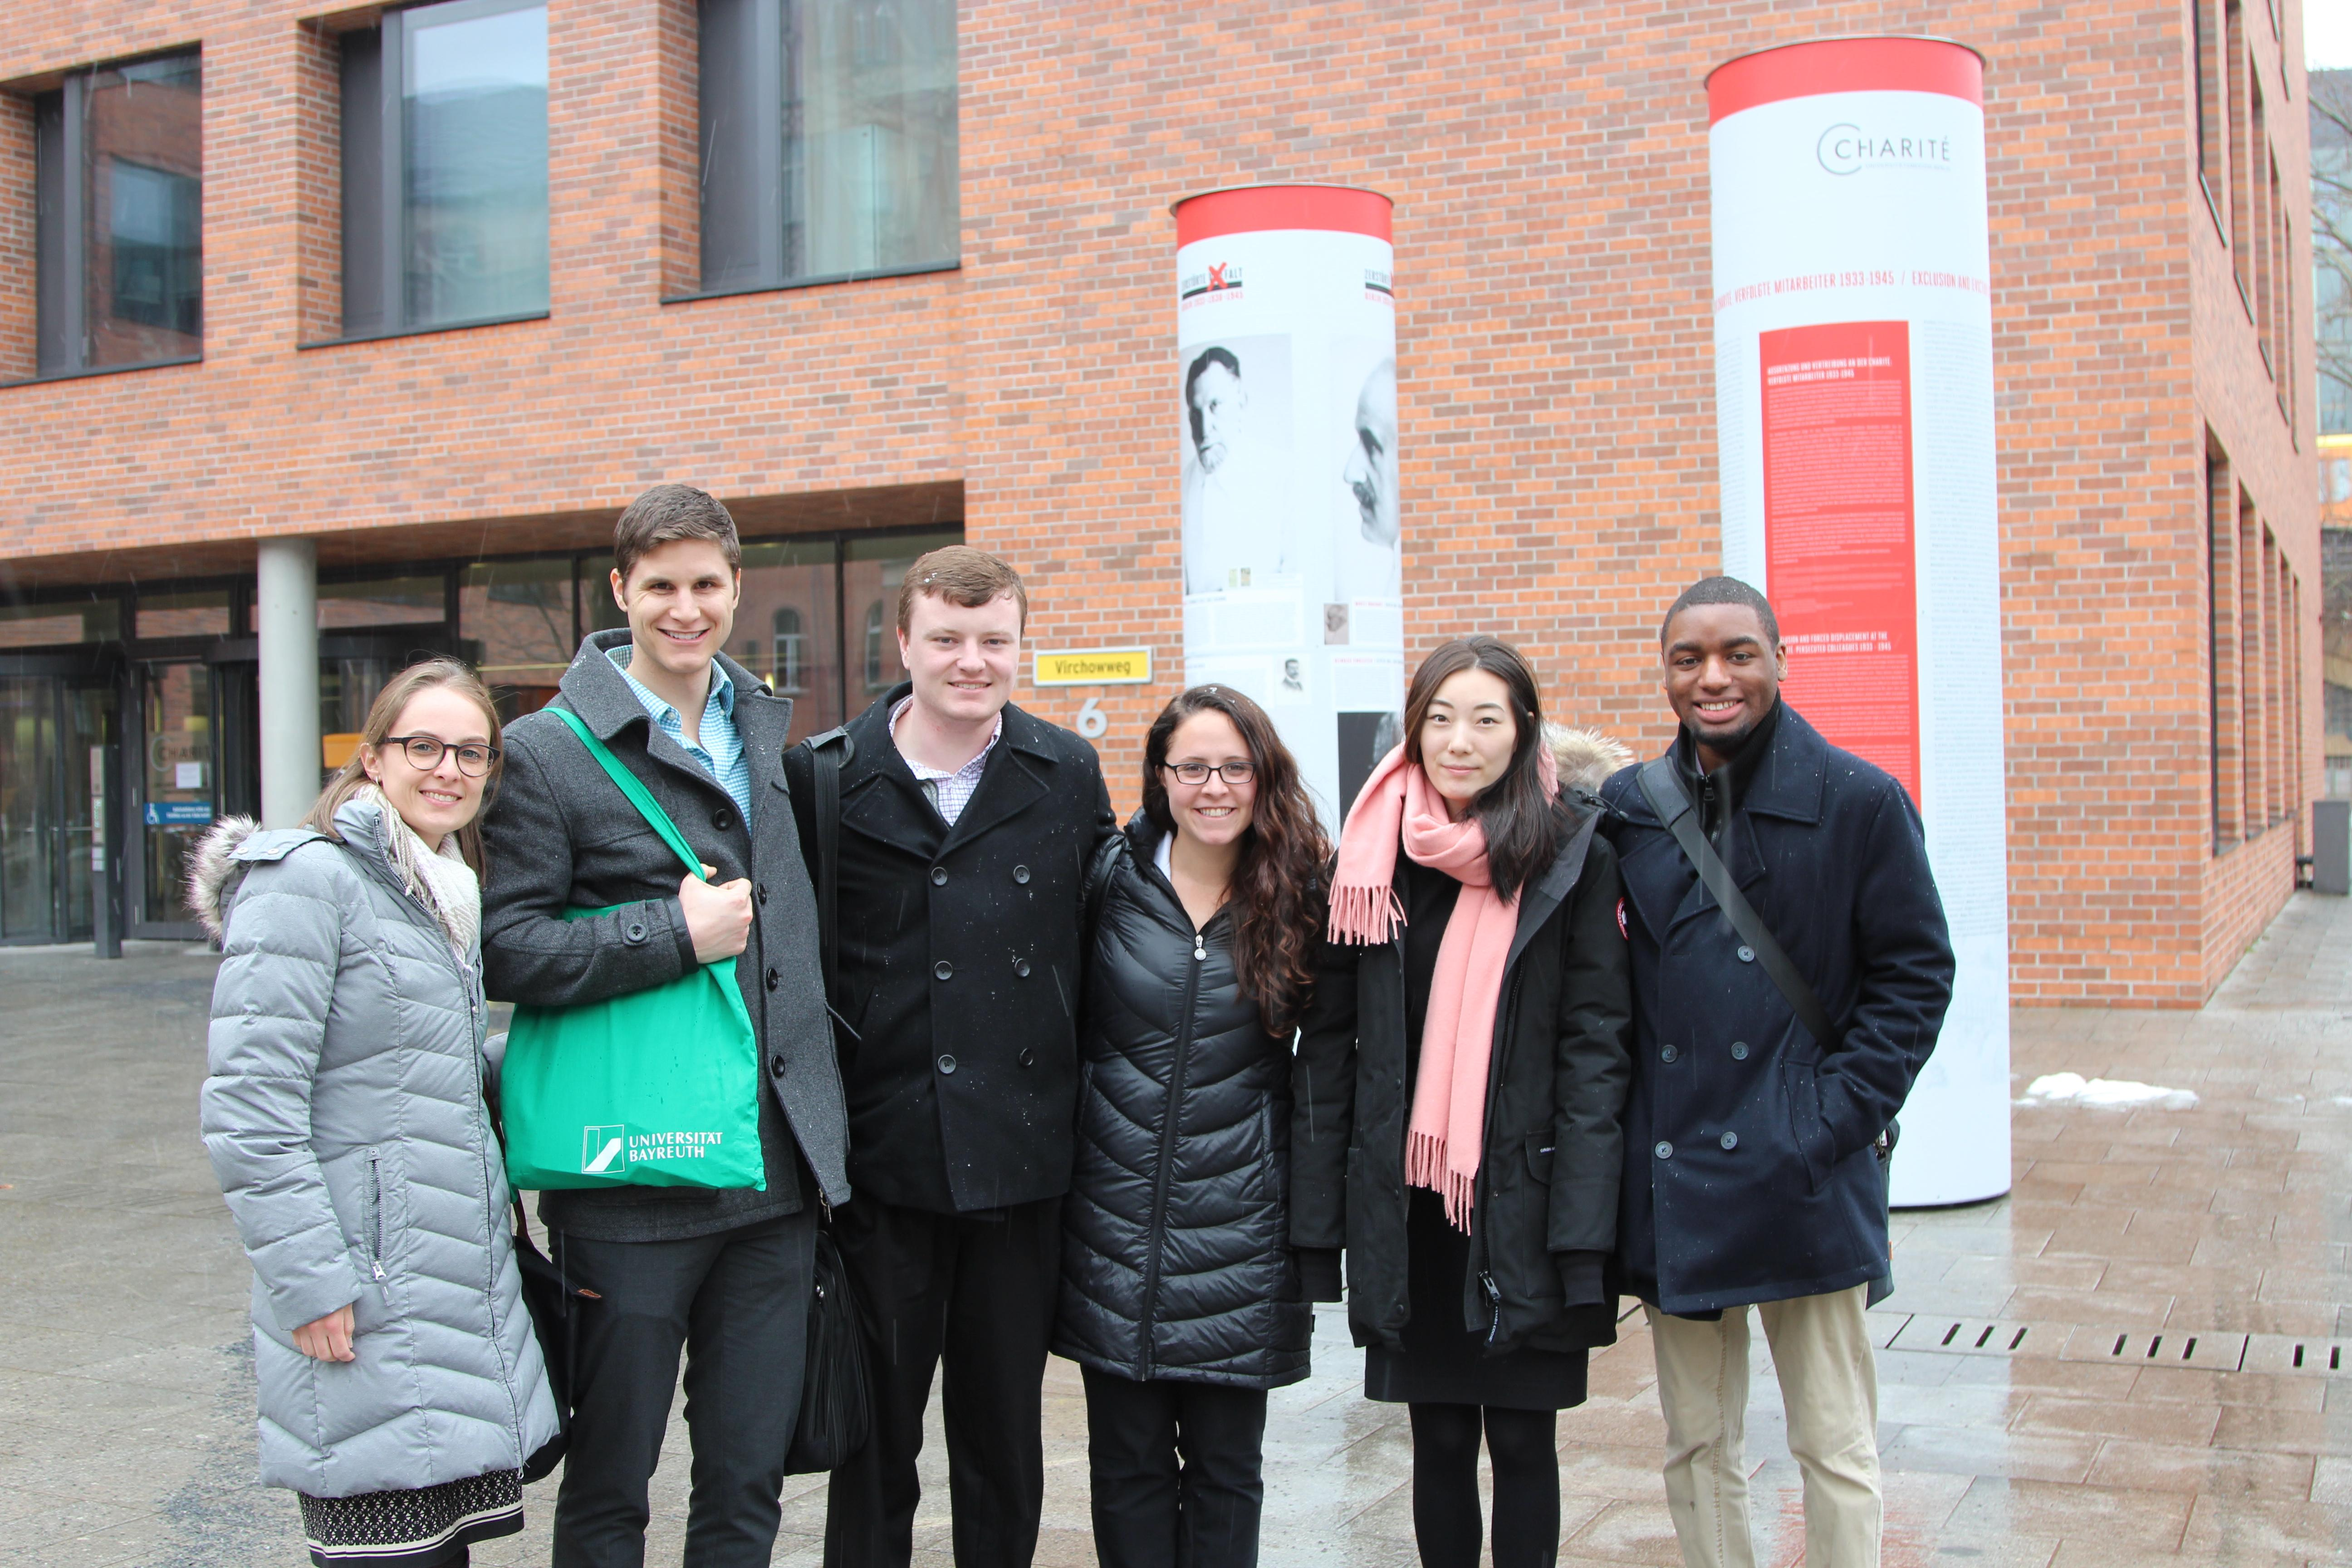 Left to right: Andrea Arathoon, John Crist, Peter Geppert, Jasmine Oesch, Constance Yang, and Quian Callender outside Charite, the largest Academic Medical Center in Berlin